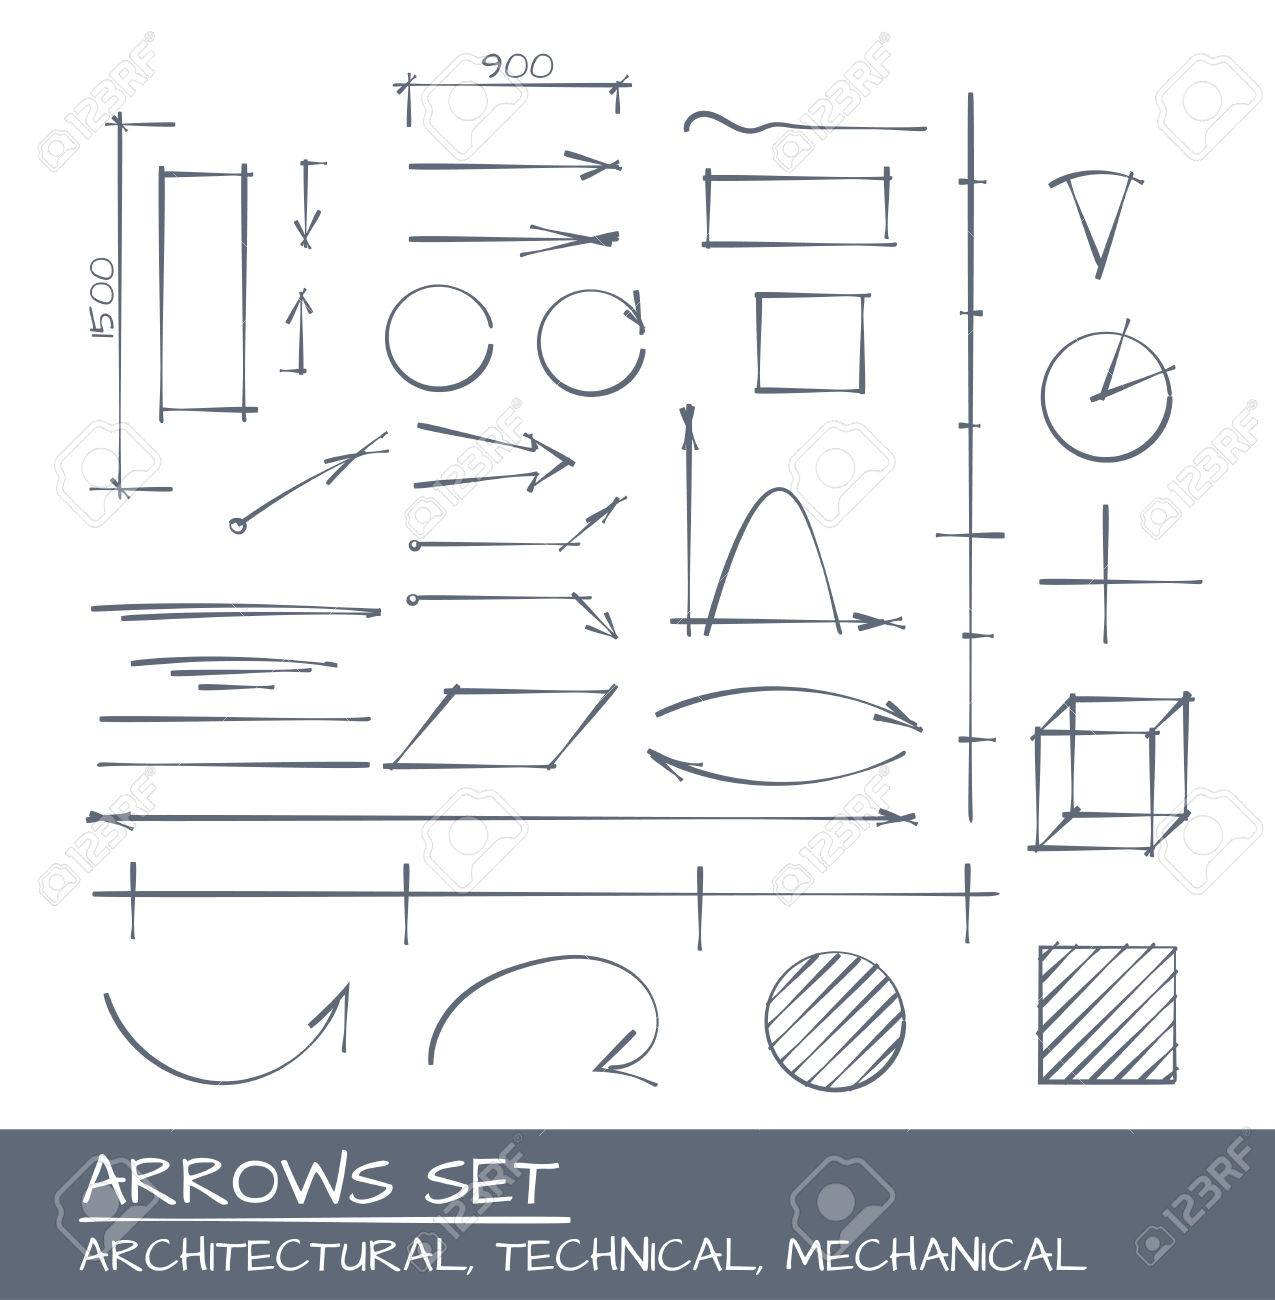 Arrows set, vector drawing for mechanical, architecture and technical illustrarions - 56302206